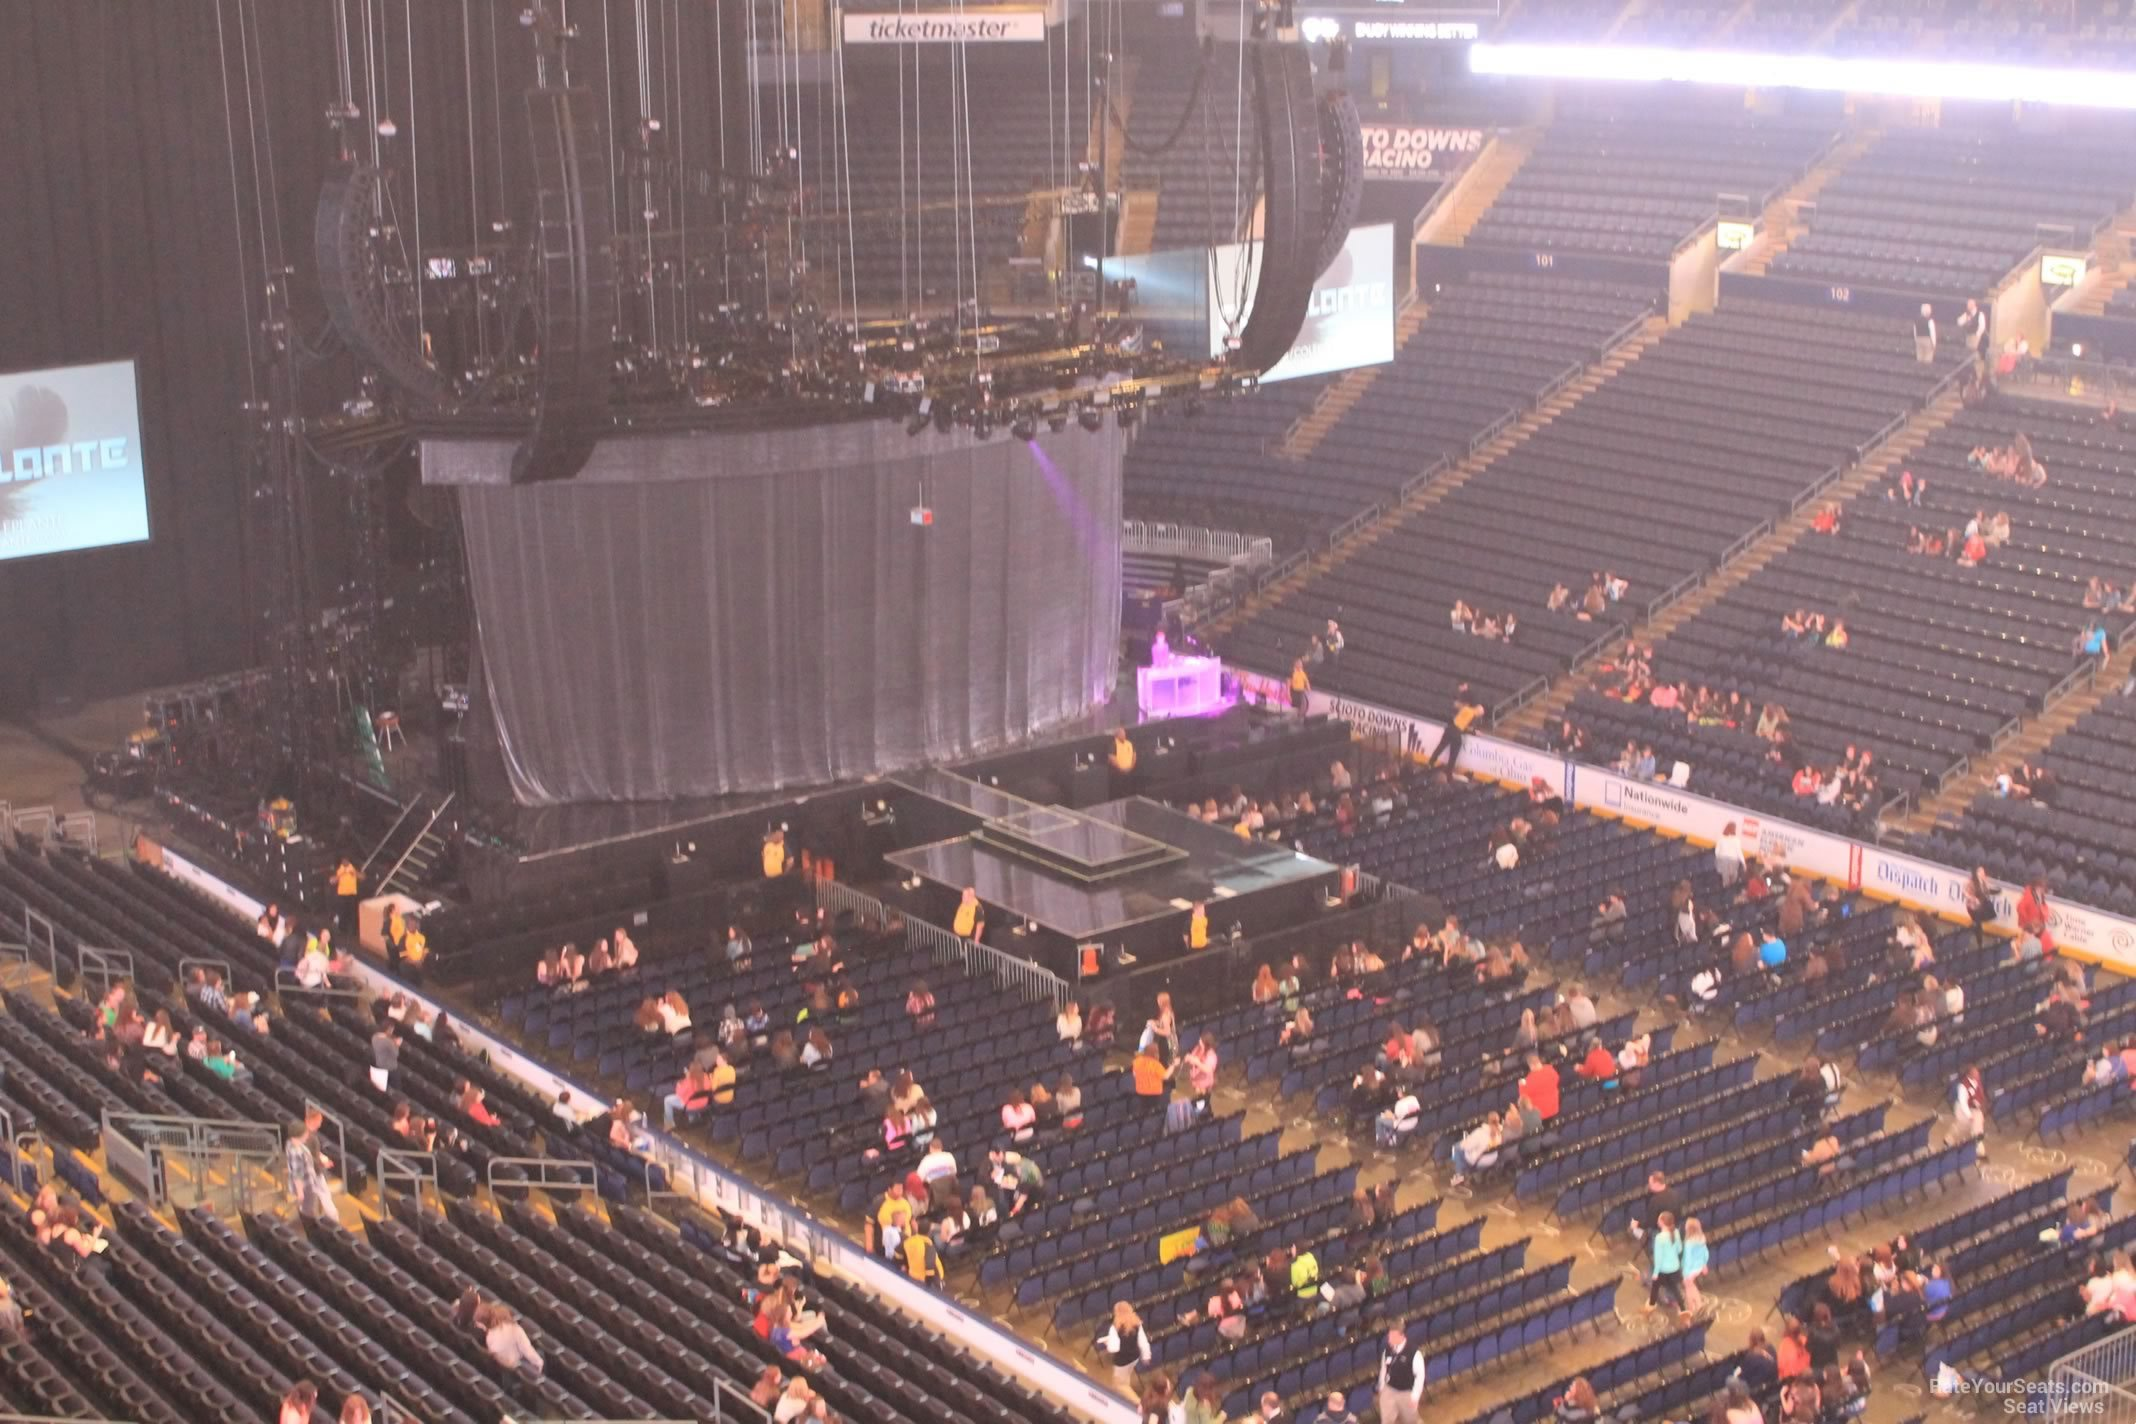 Concert Seat View For Nationwide Arena Section 215 Row C